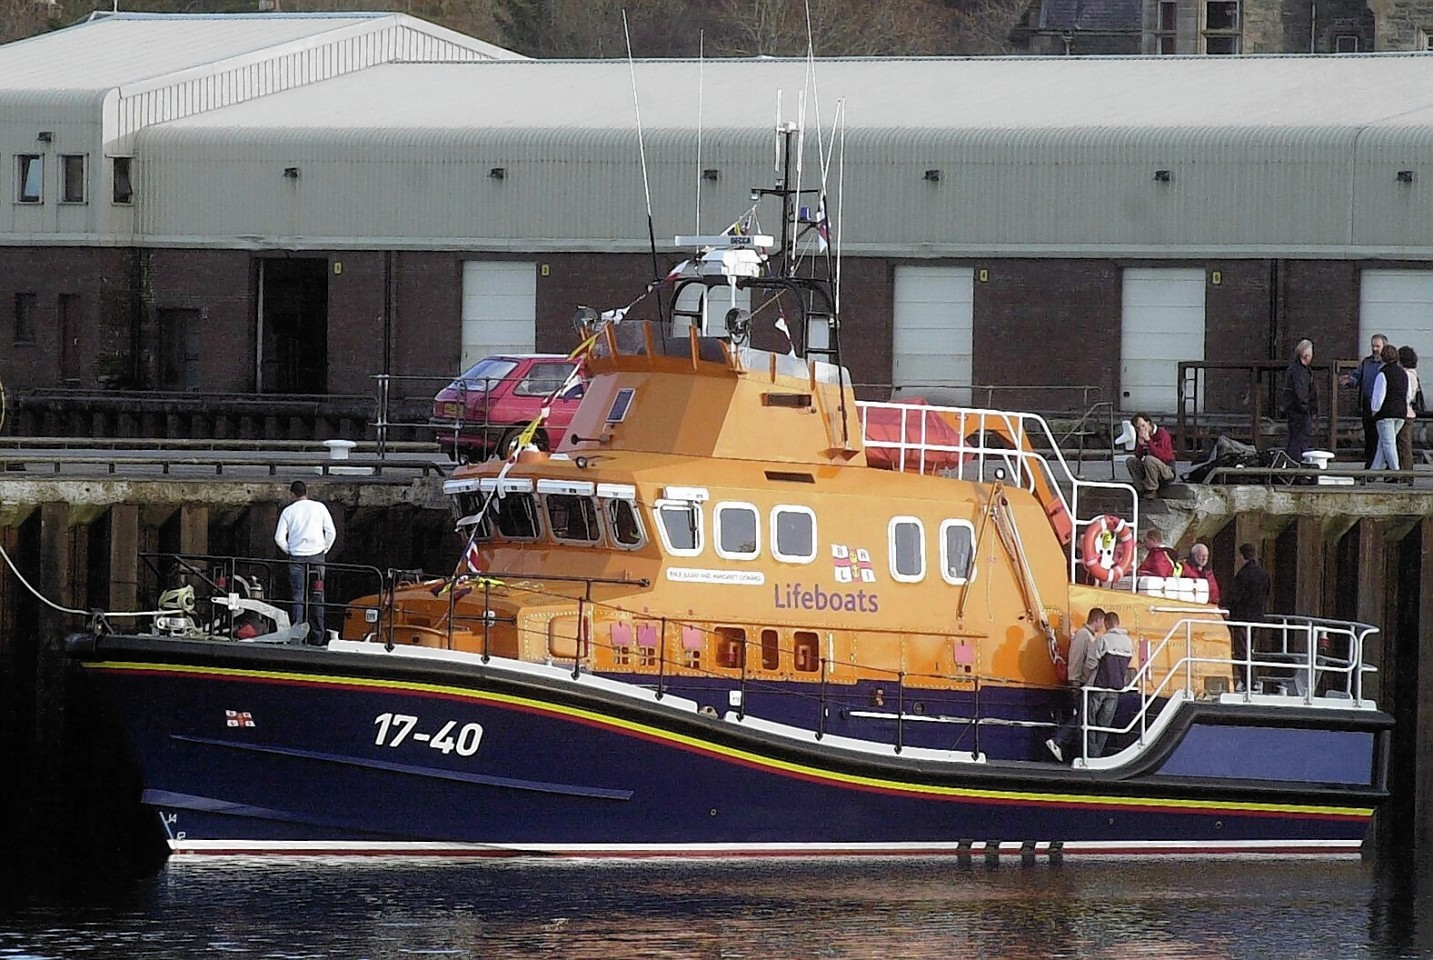 The Lochinver Lifeboat